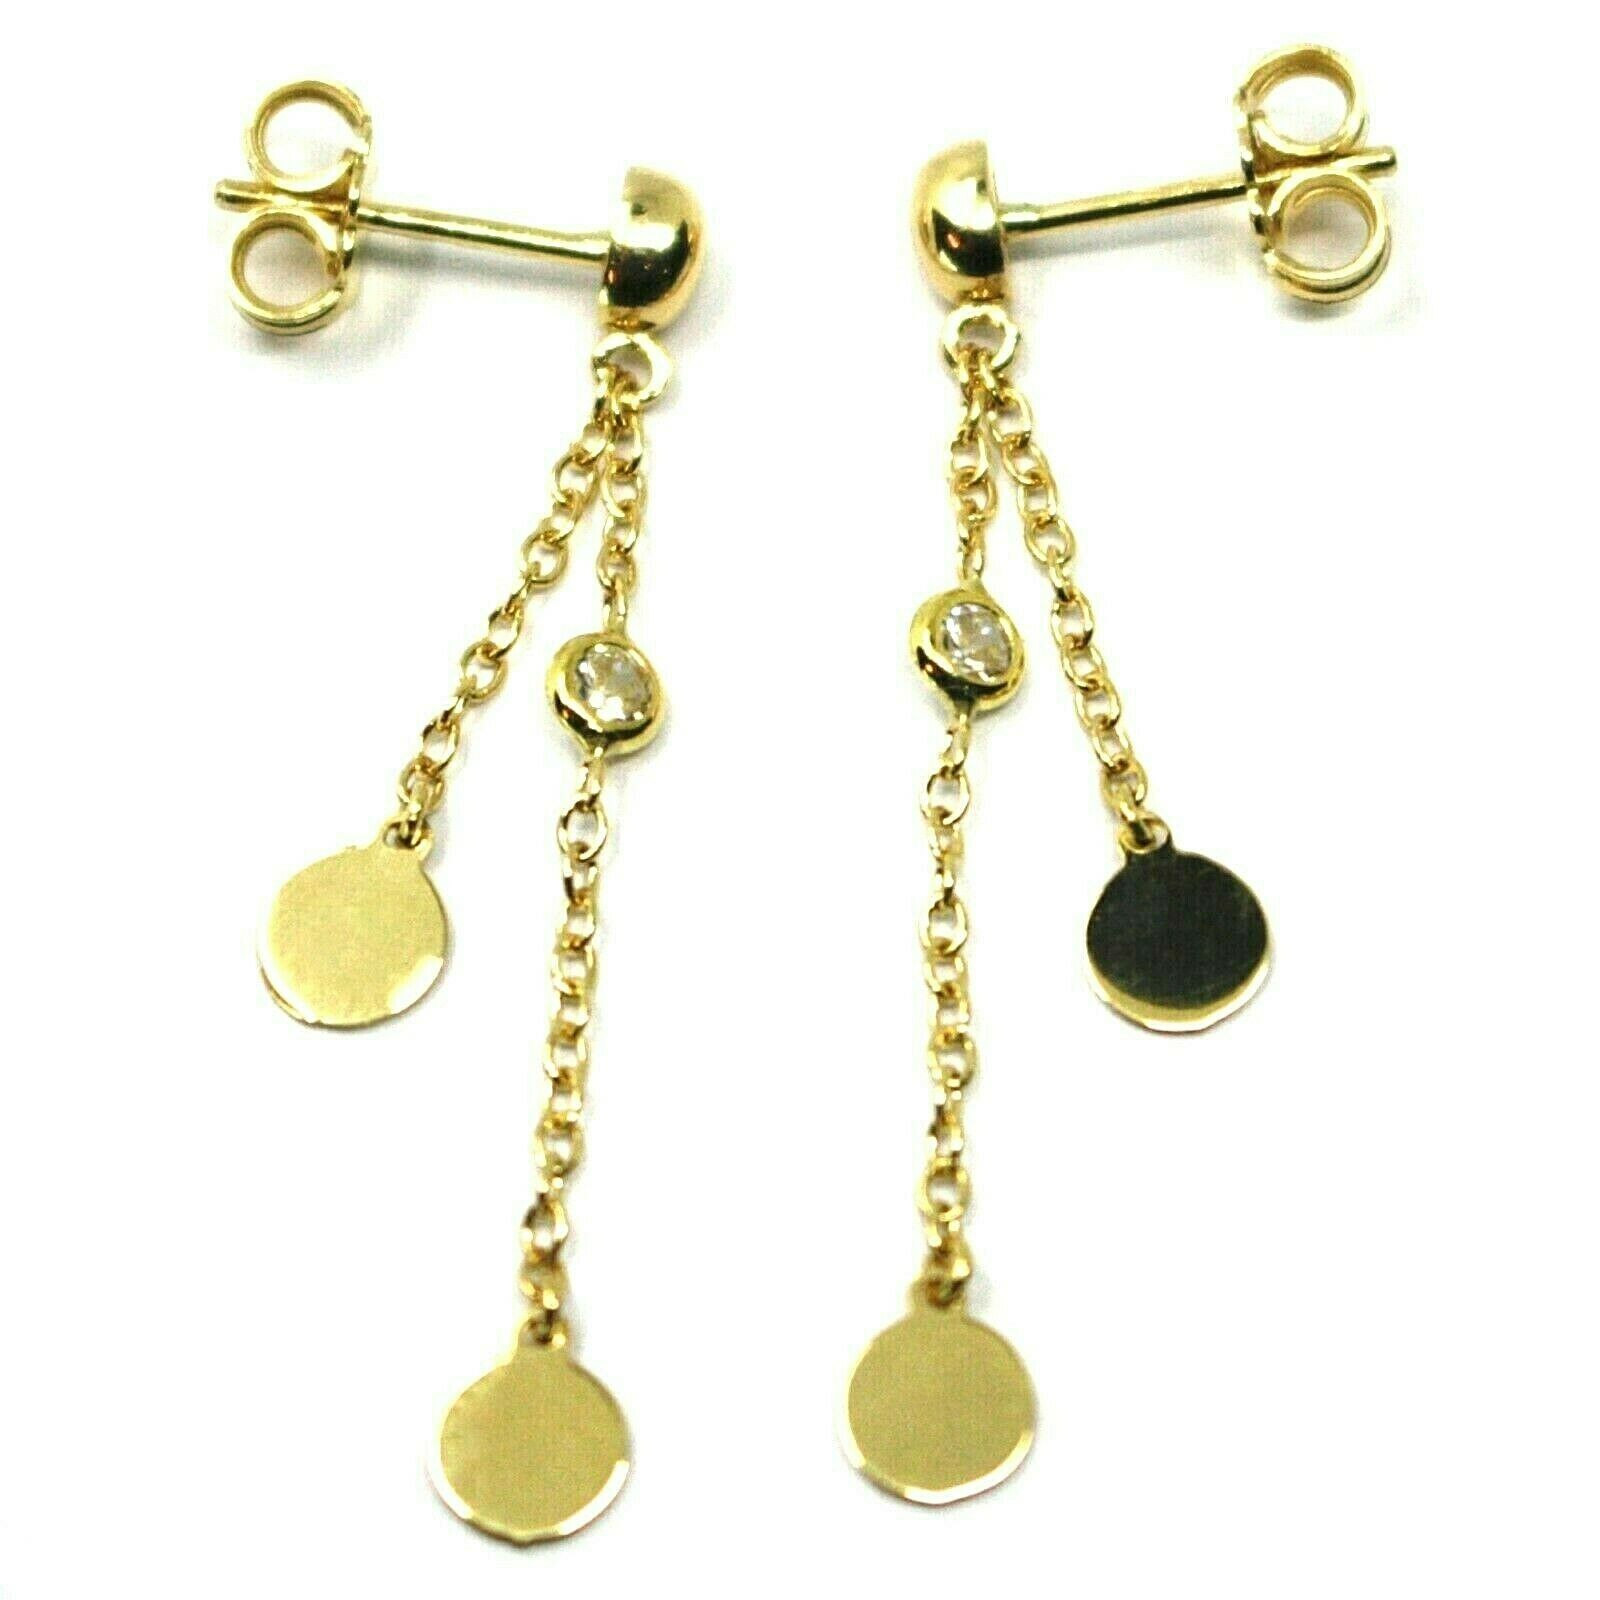 18K YELLOW GOLD PENDANT EARRINGS, DOUBLE WIRES WITH DISCS & ZIRCONIA 1.5 INCHES